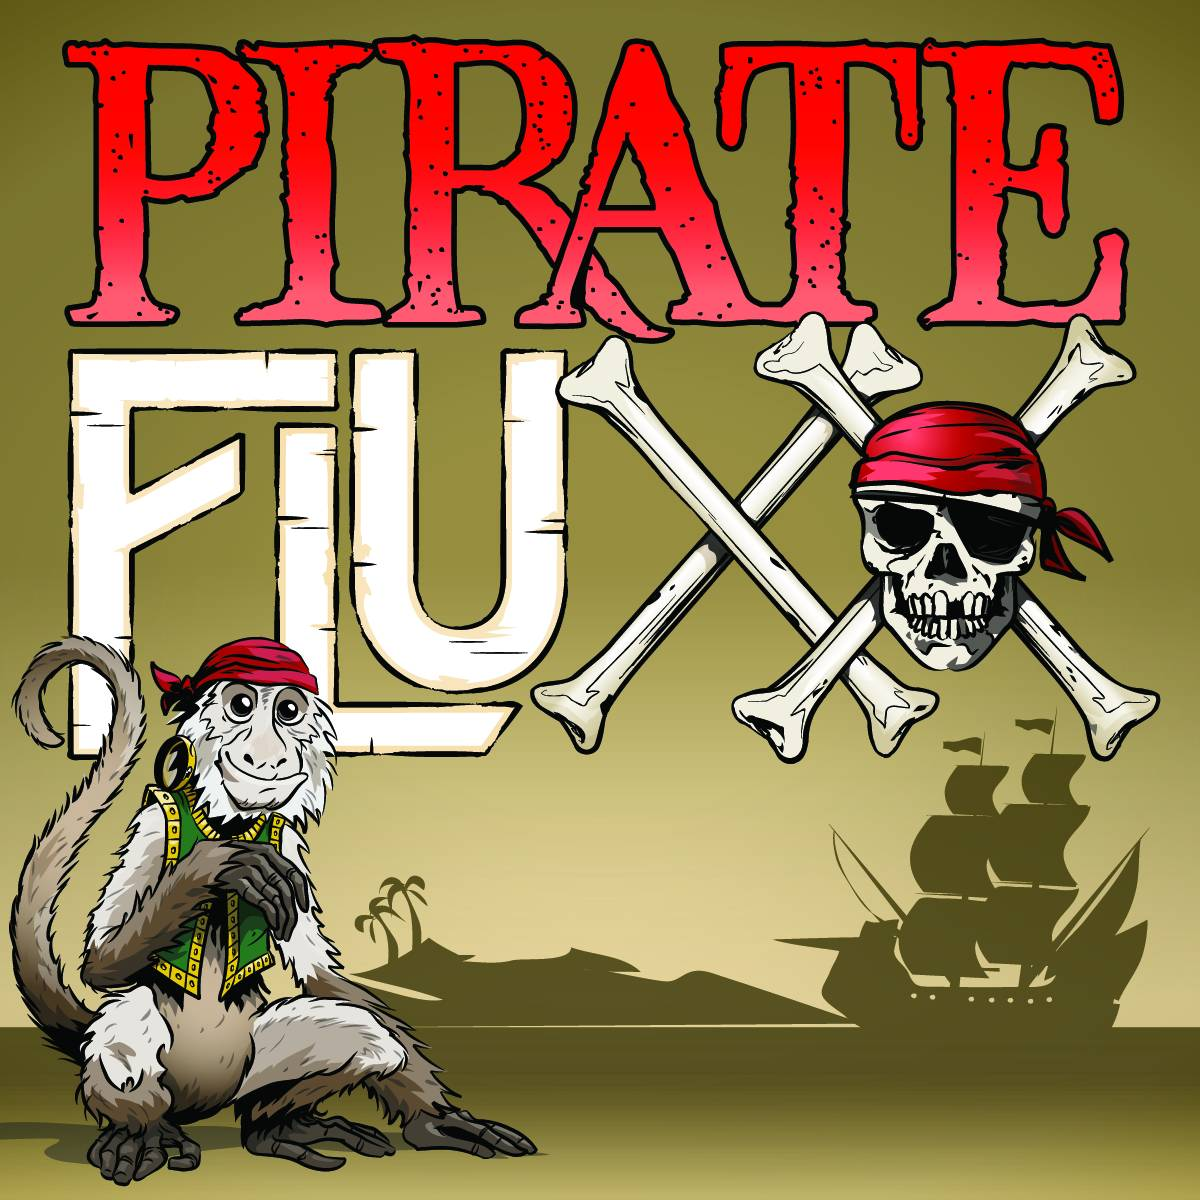 http://superflycomics.com/wp-content/uploads/2011/02/piratefluxx.jpg